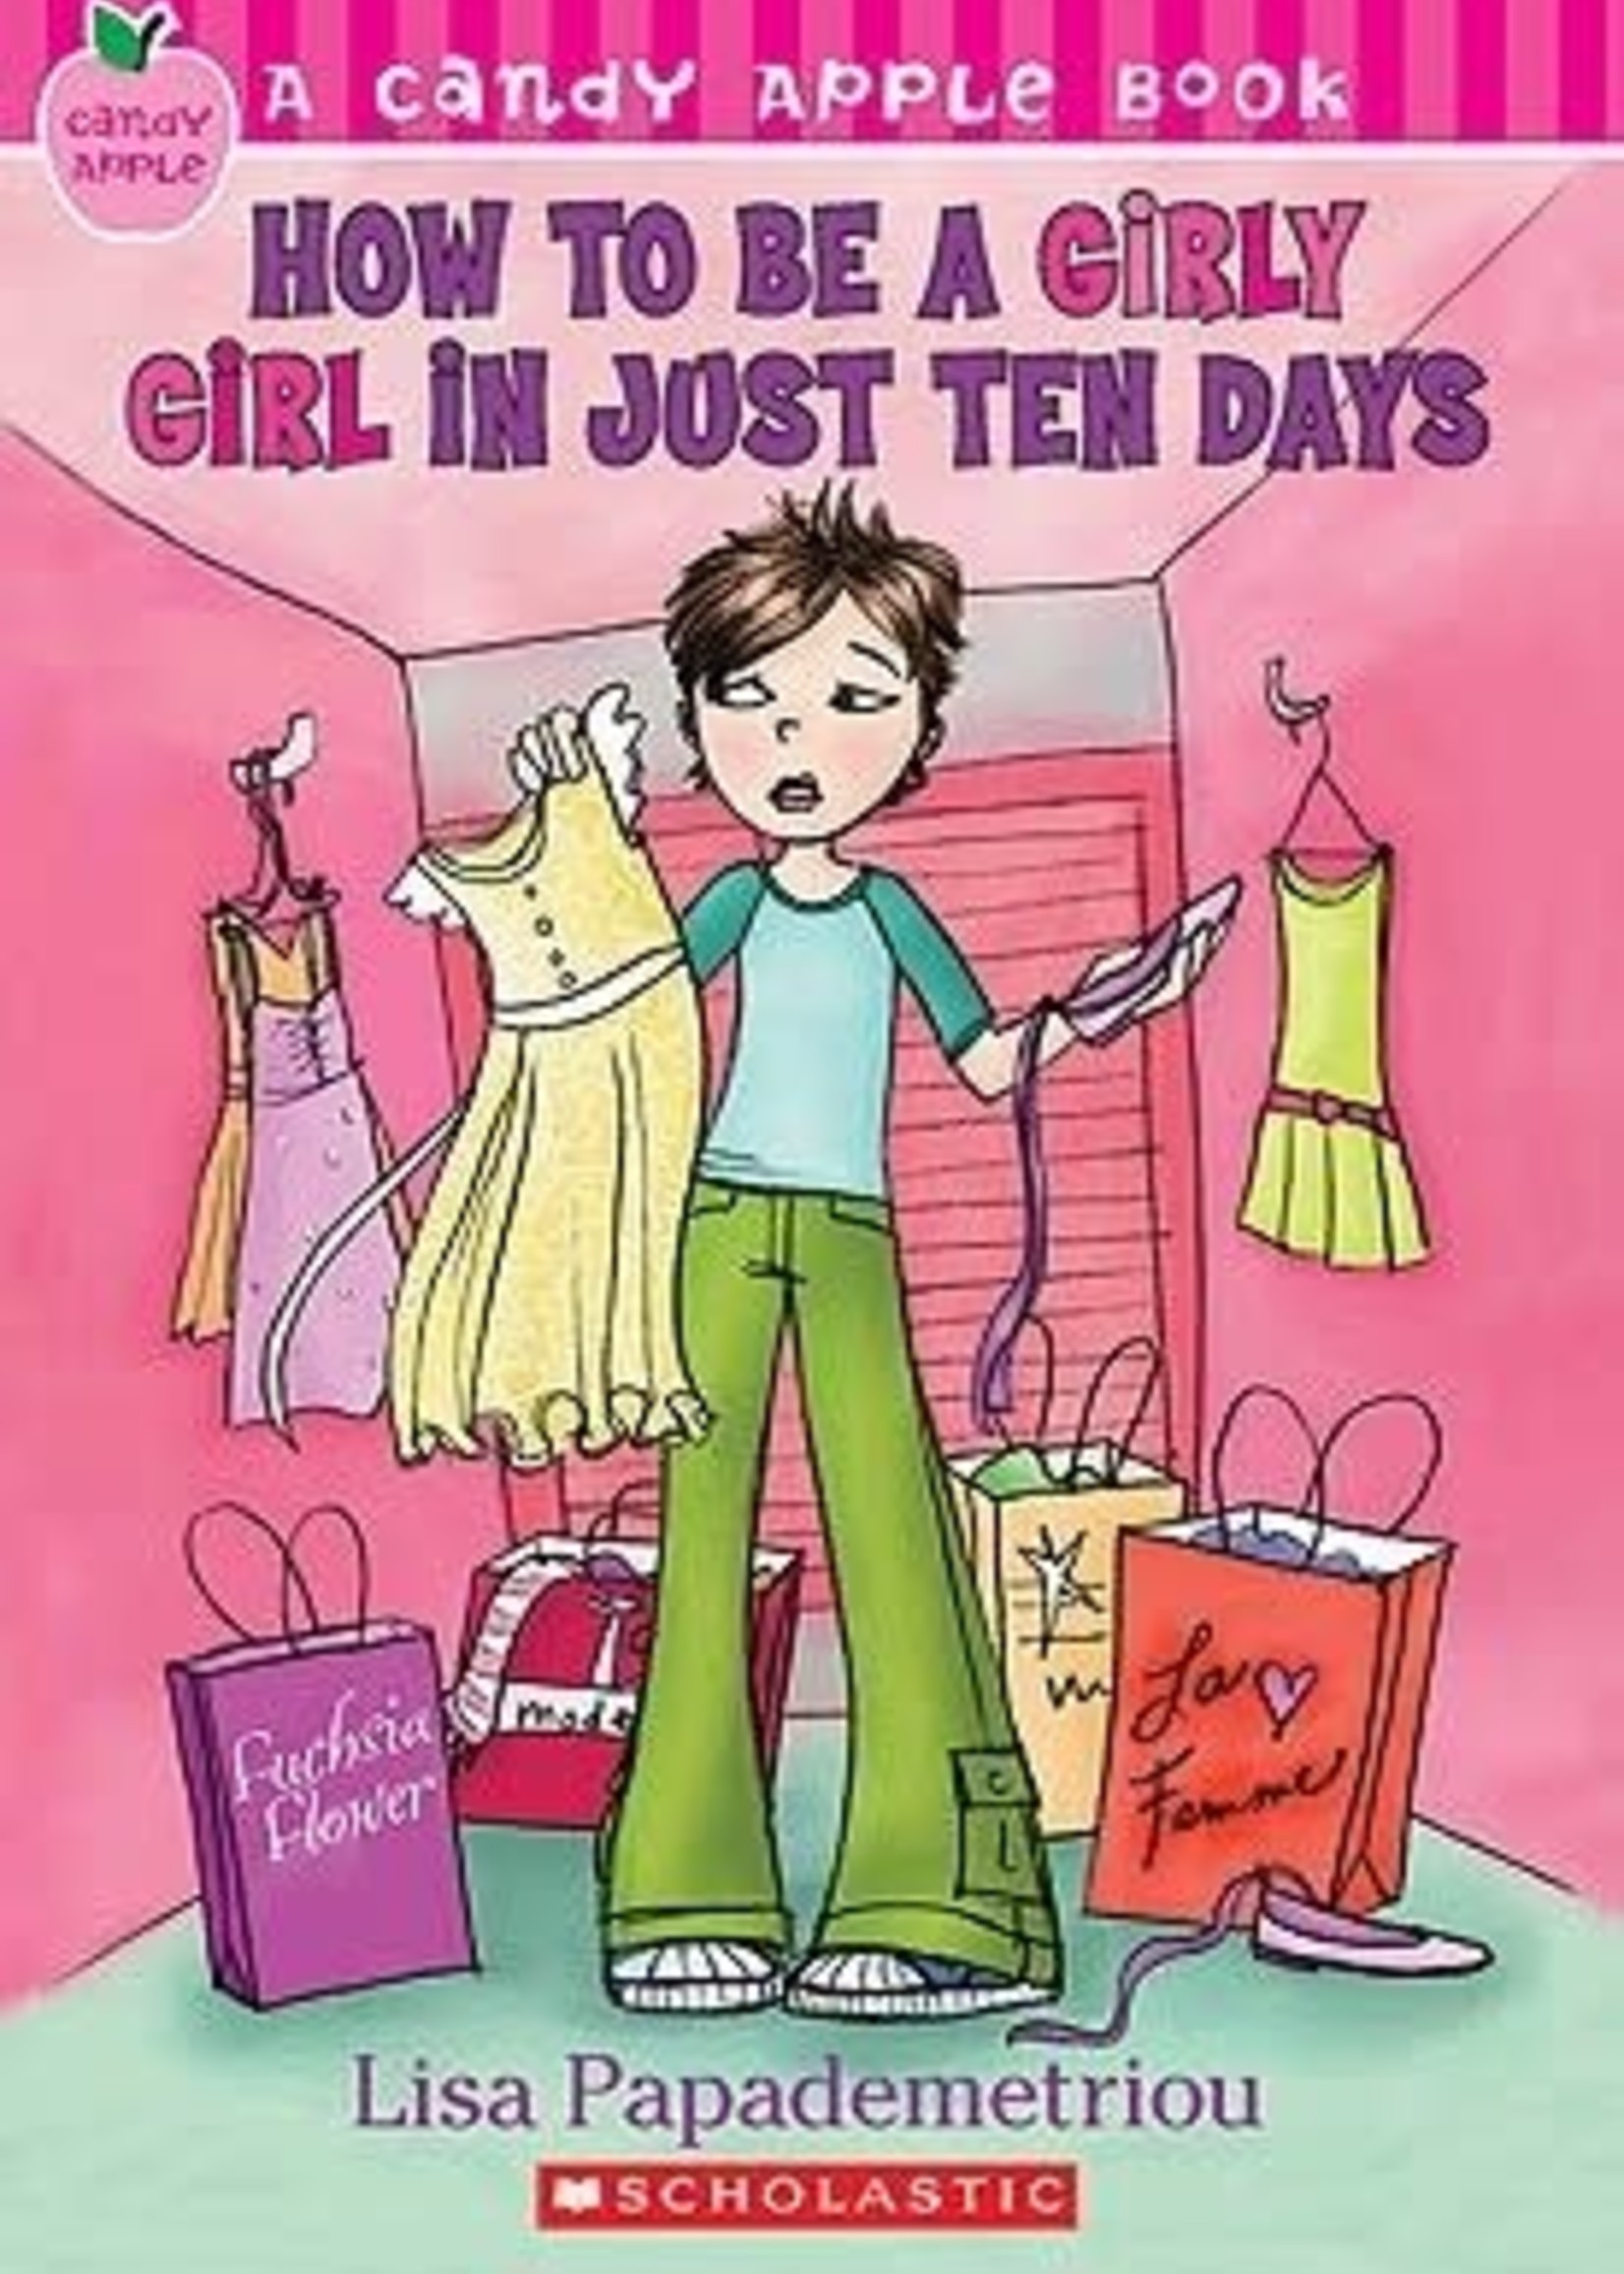 USED - How To Be a Girly Girl in Just Ten Days by Lisa Papademetriou